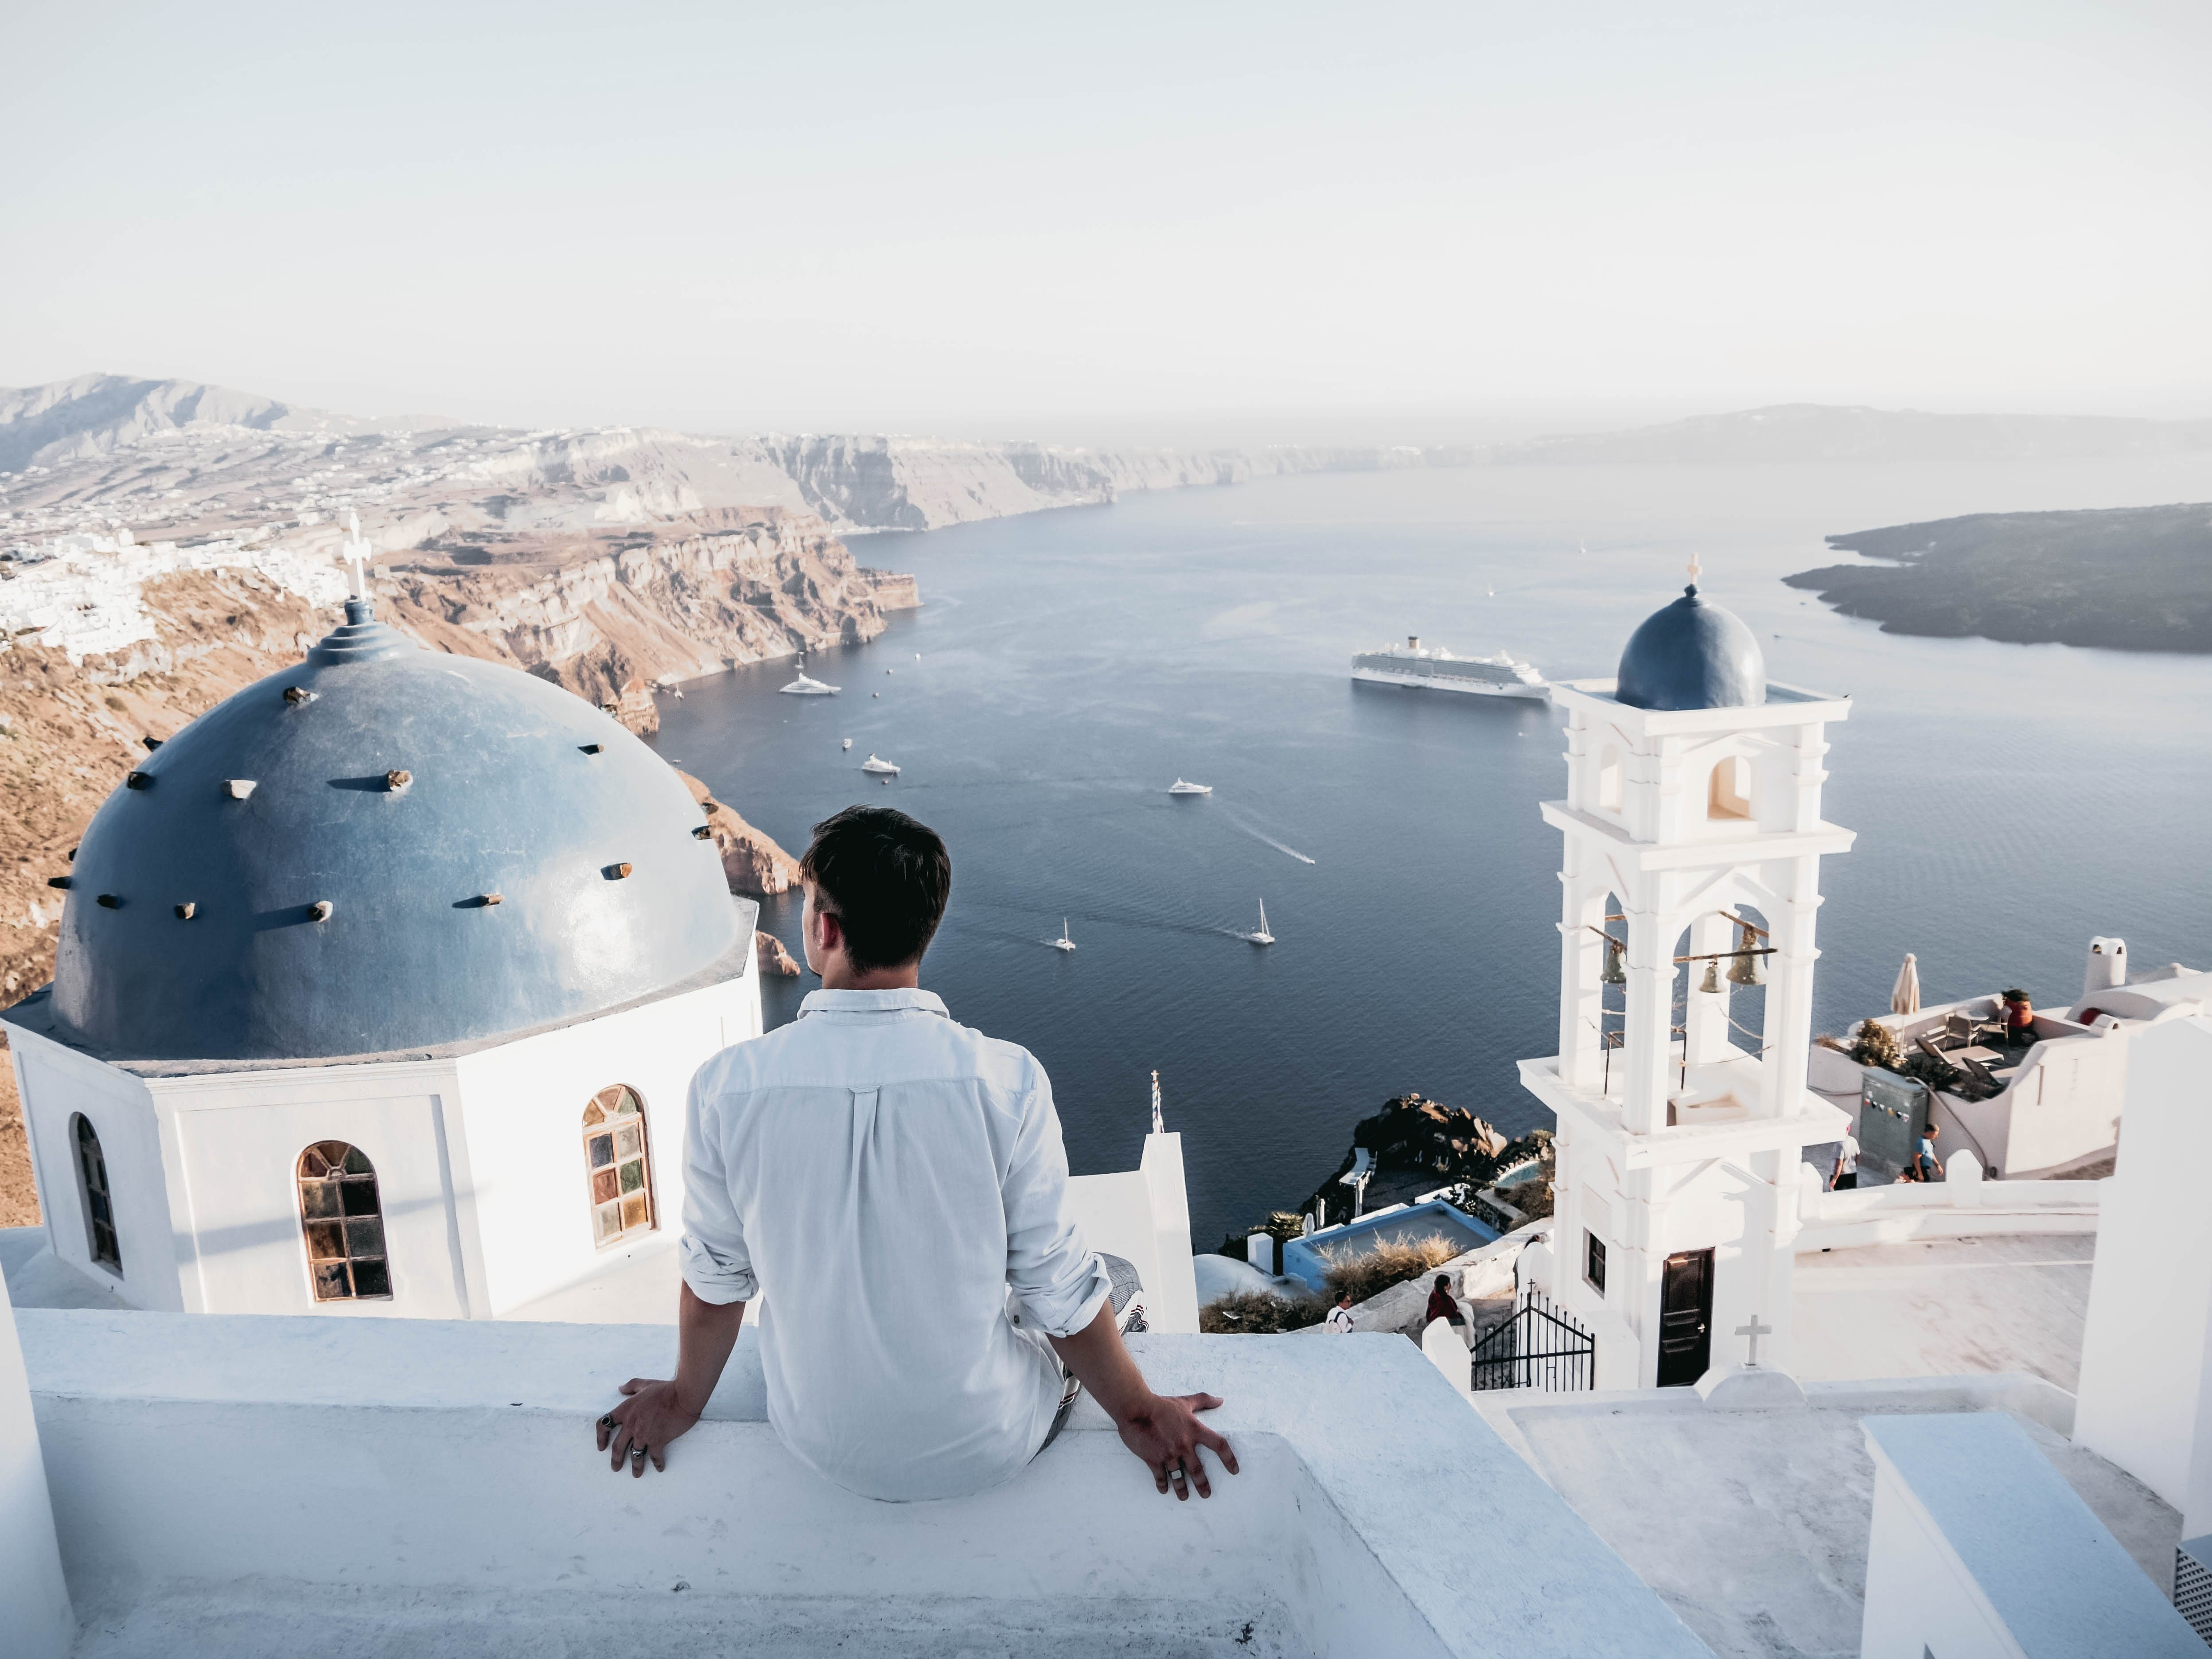 greece - man sitting on edge looking over water